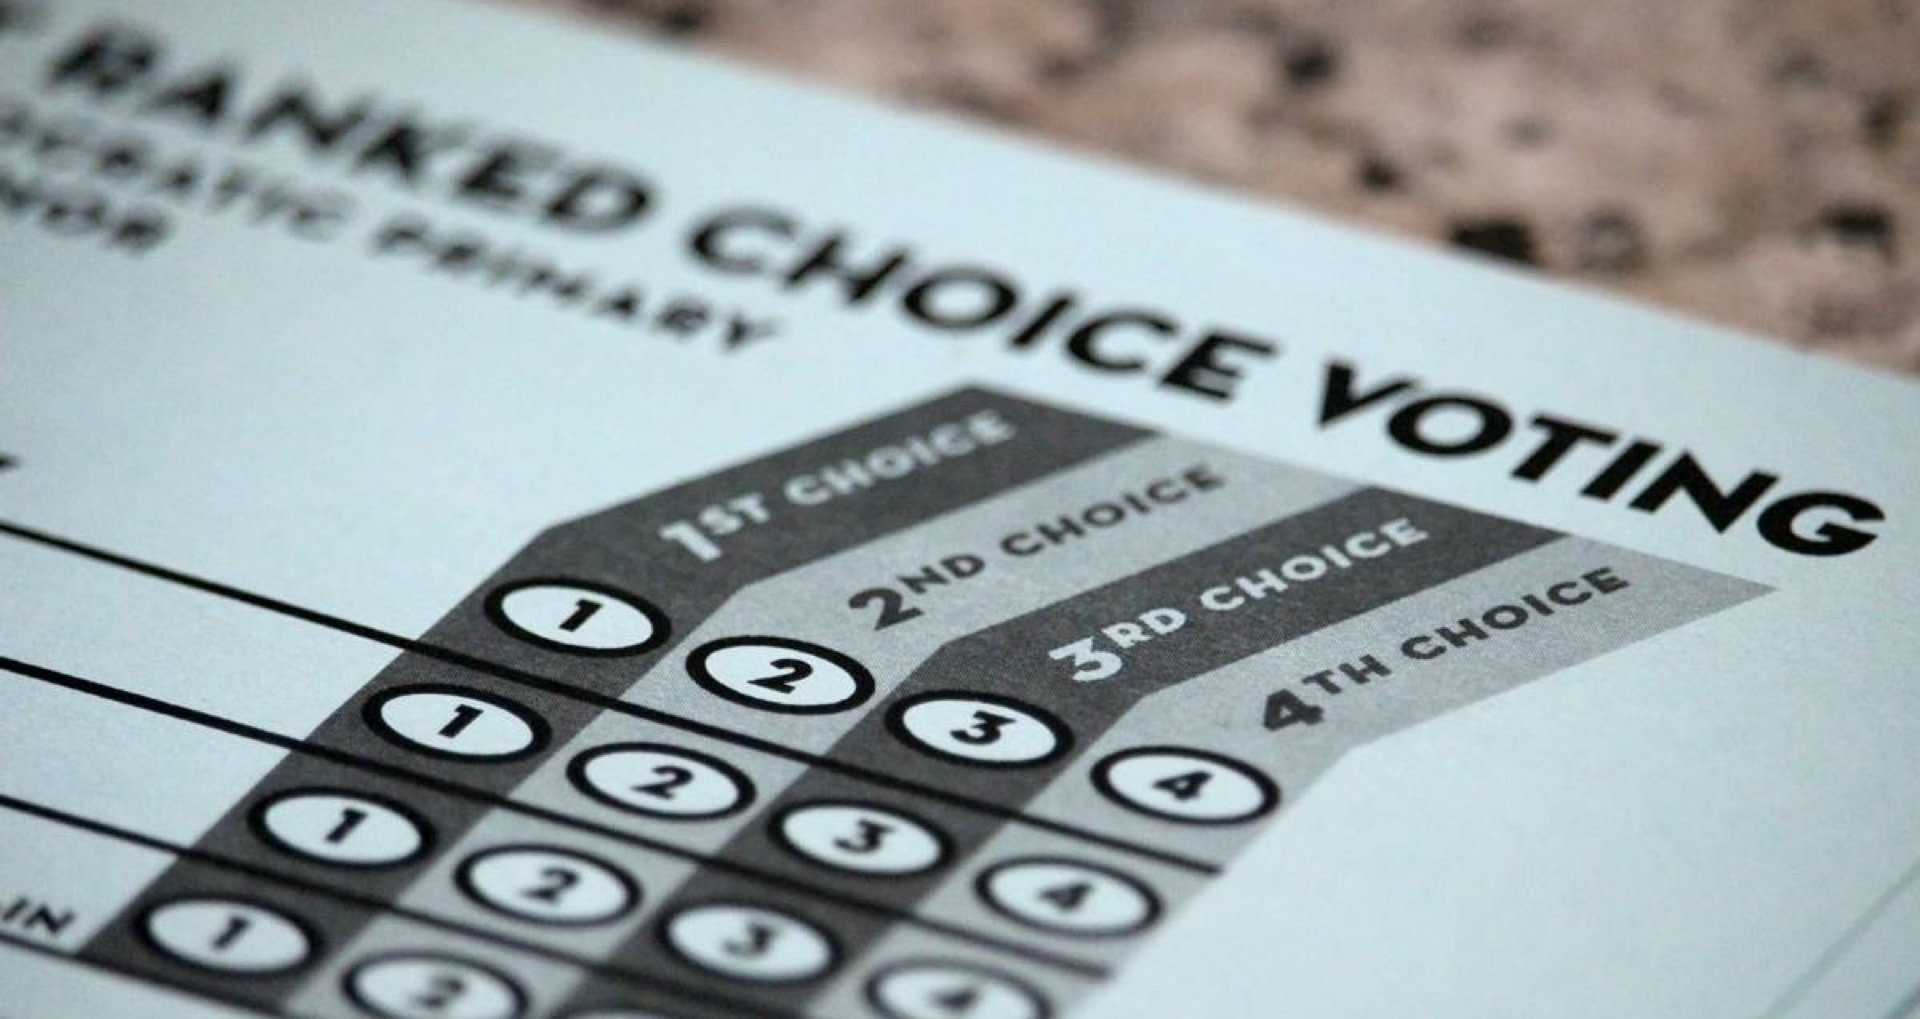 Mass. Voters May Get Ranked Choice Voting on the 2020 Ballot | Independent Voter News